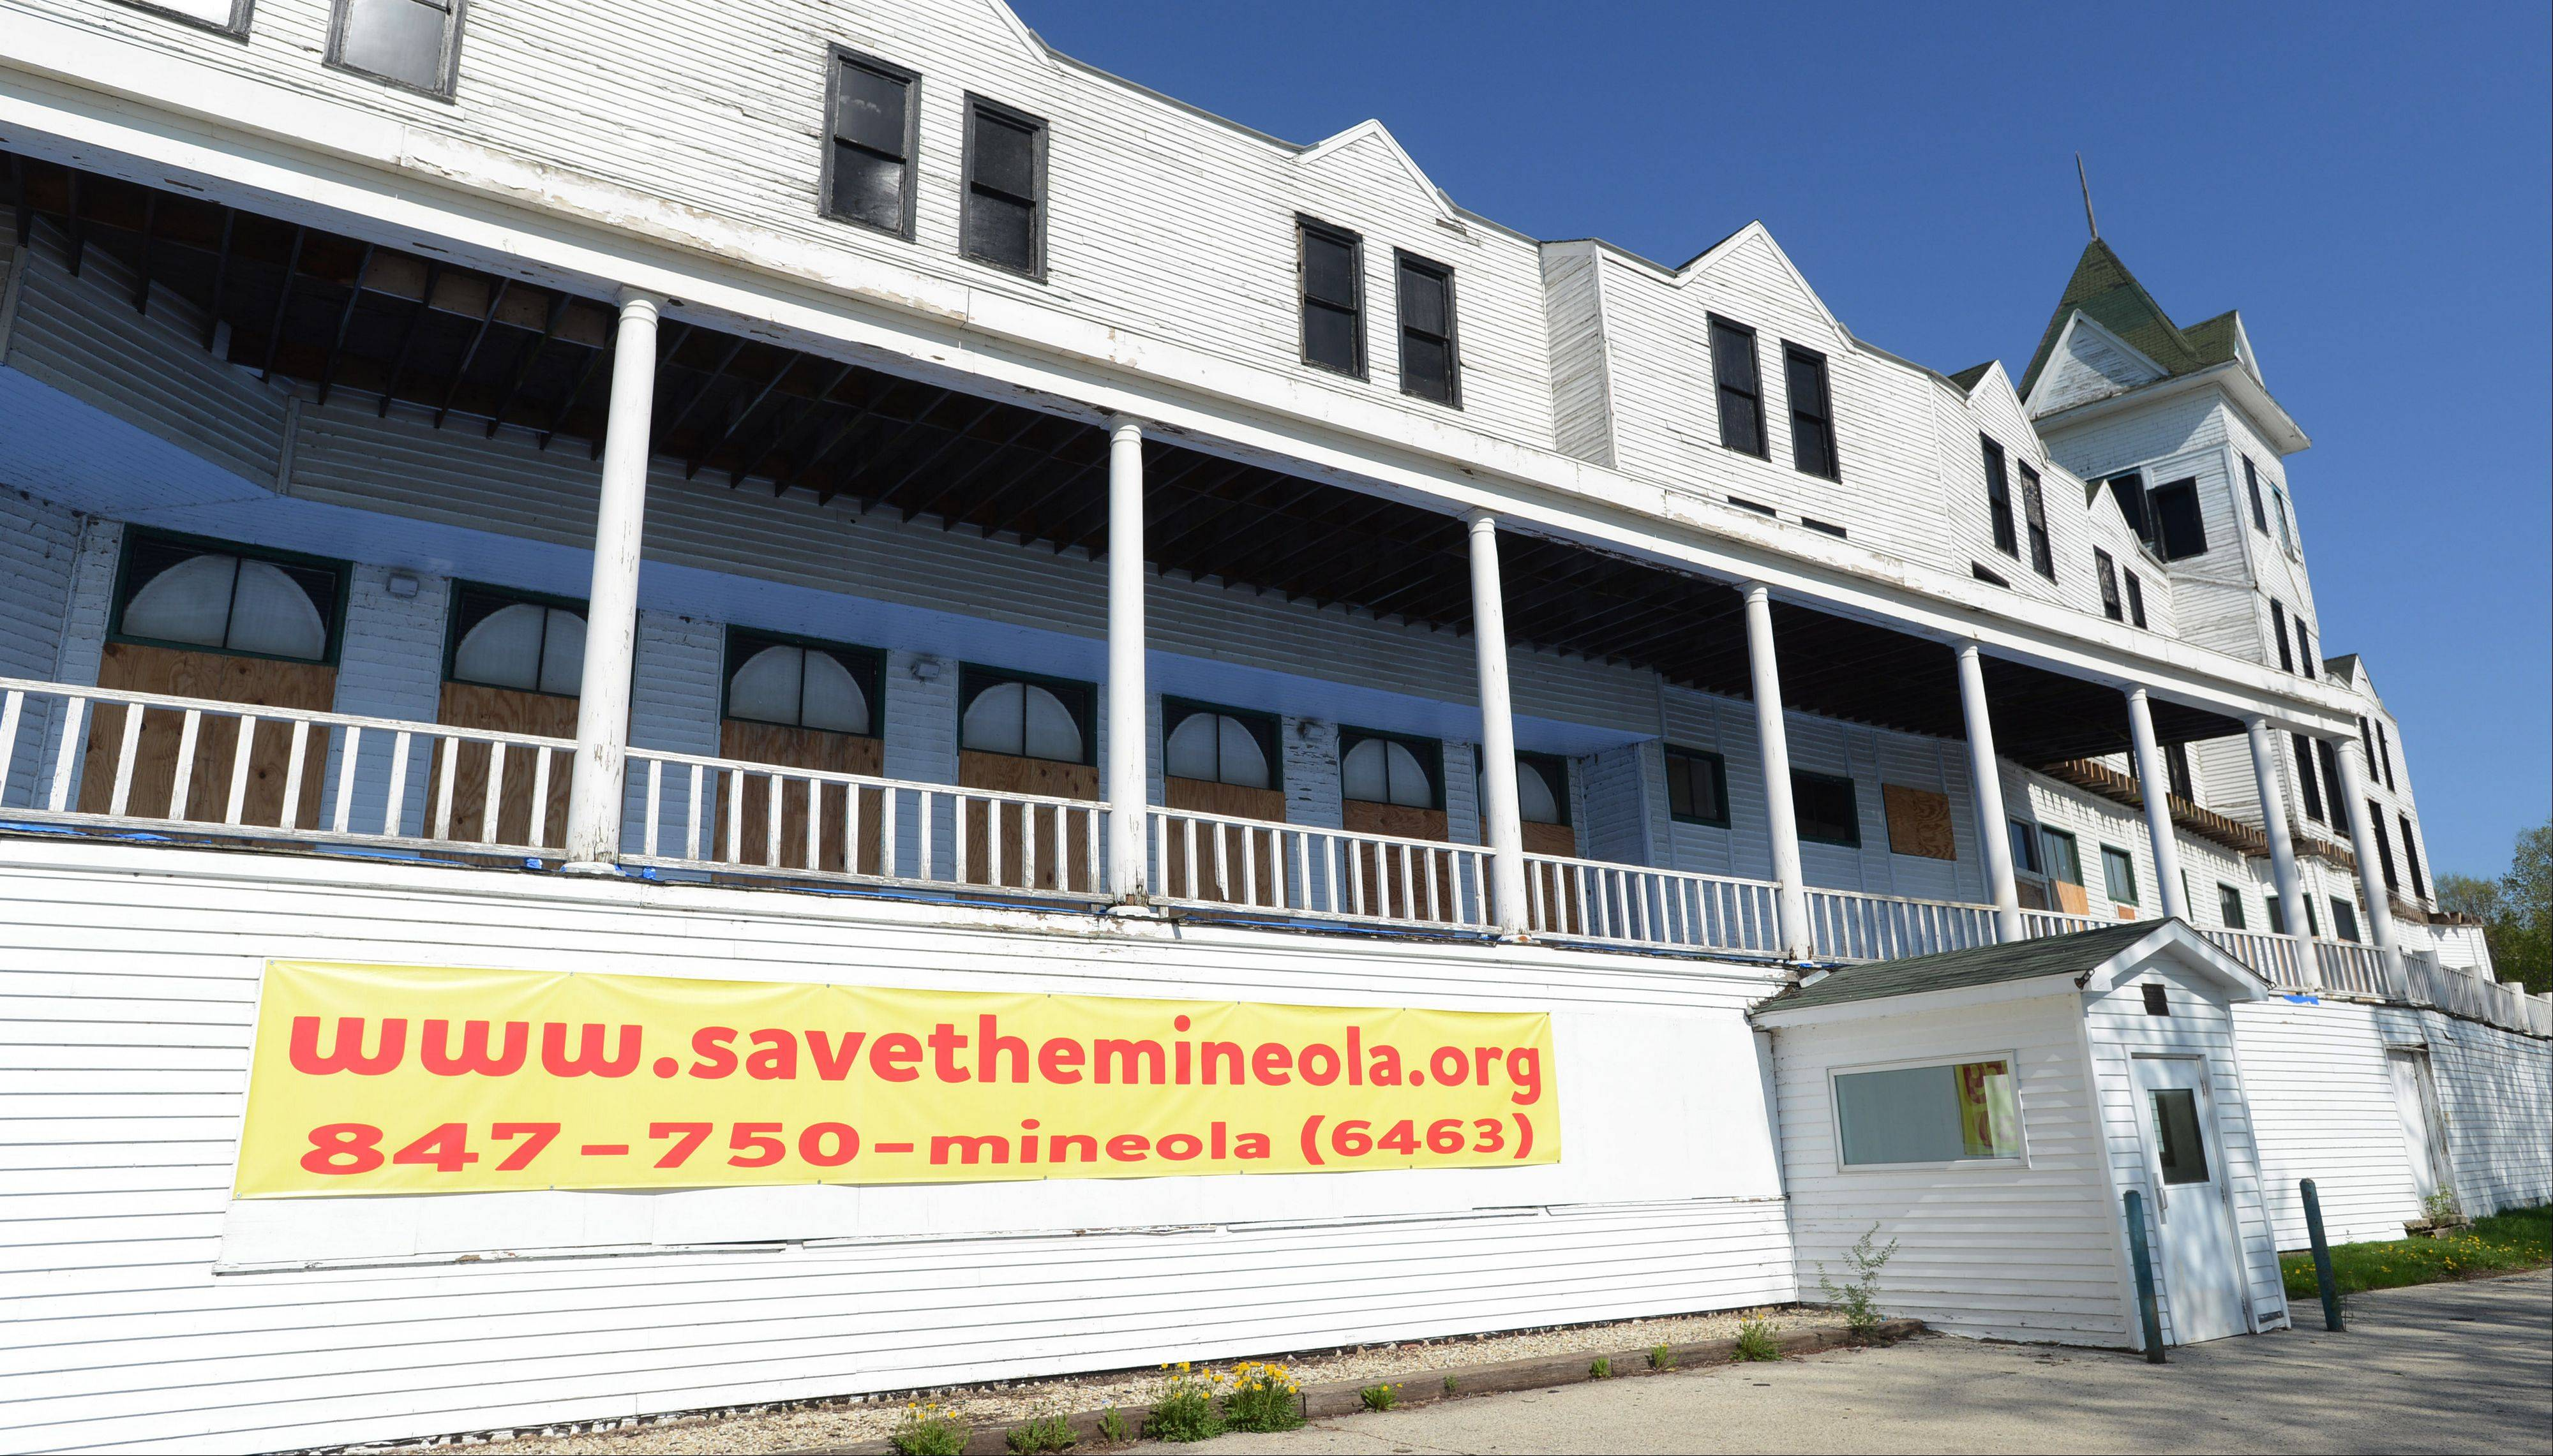 Supporters hope the recent listing of the Mineola Hotel in Fox Lake as an endangered historic place will generate public awareness of the local landmark.